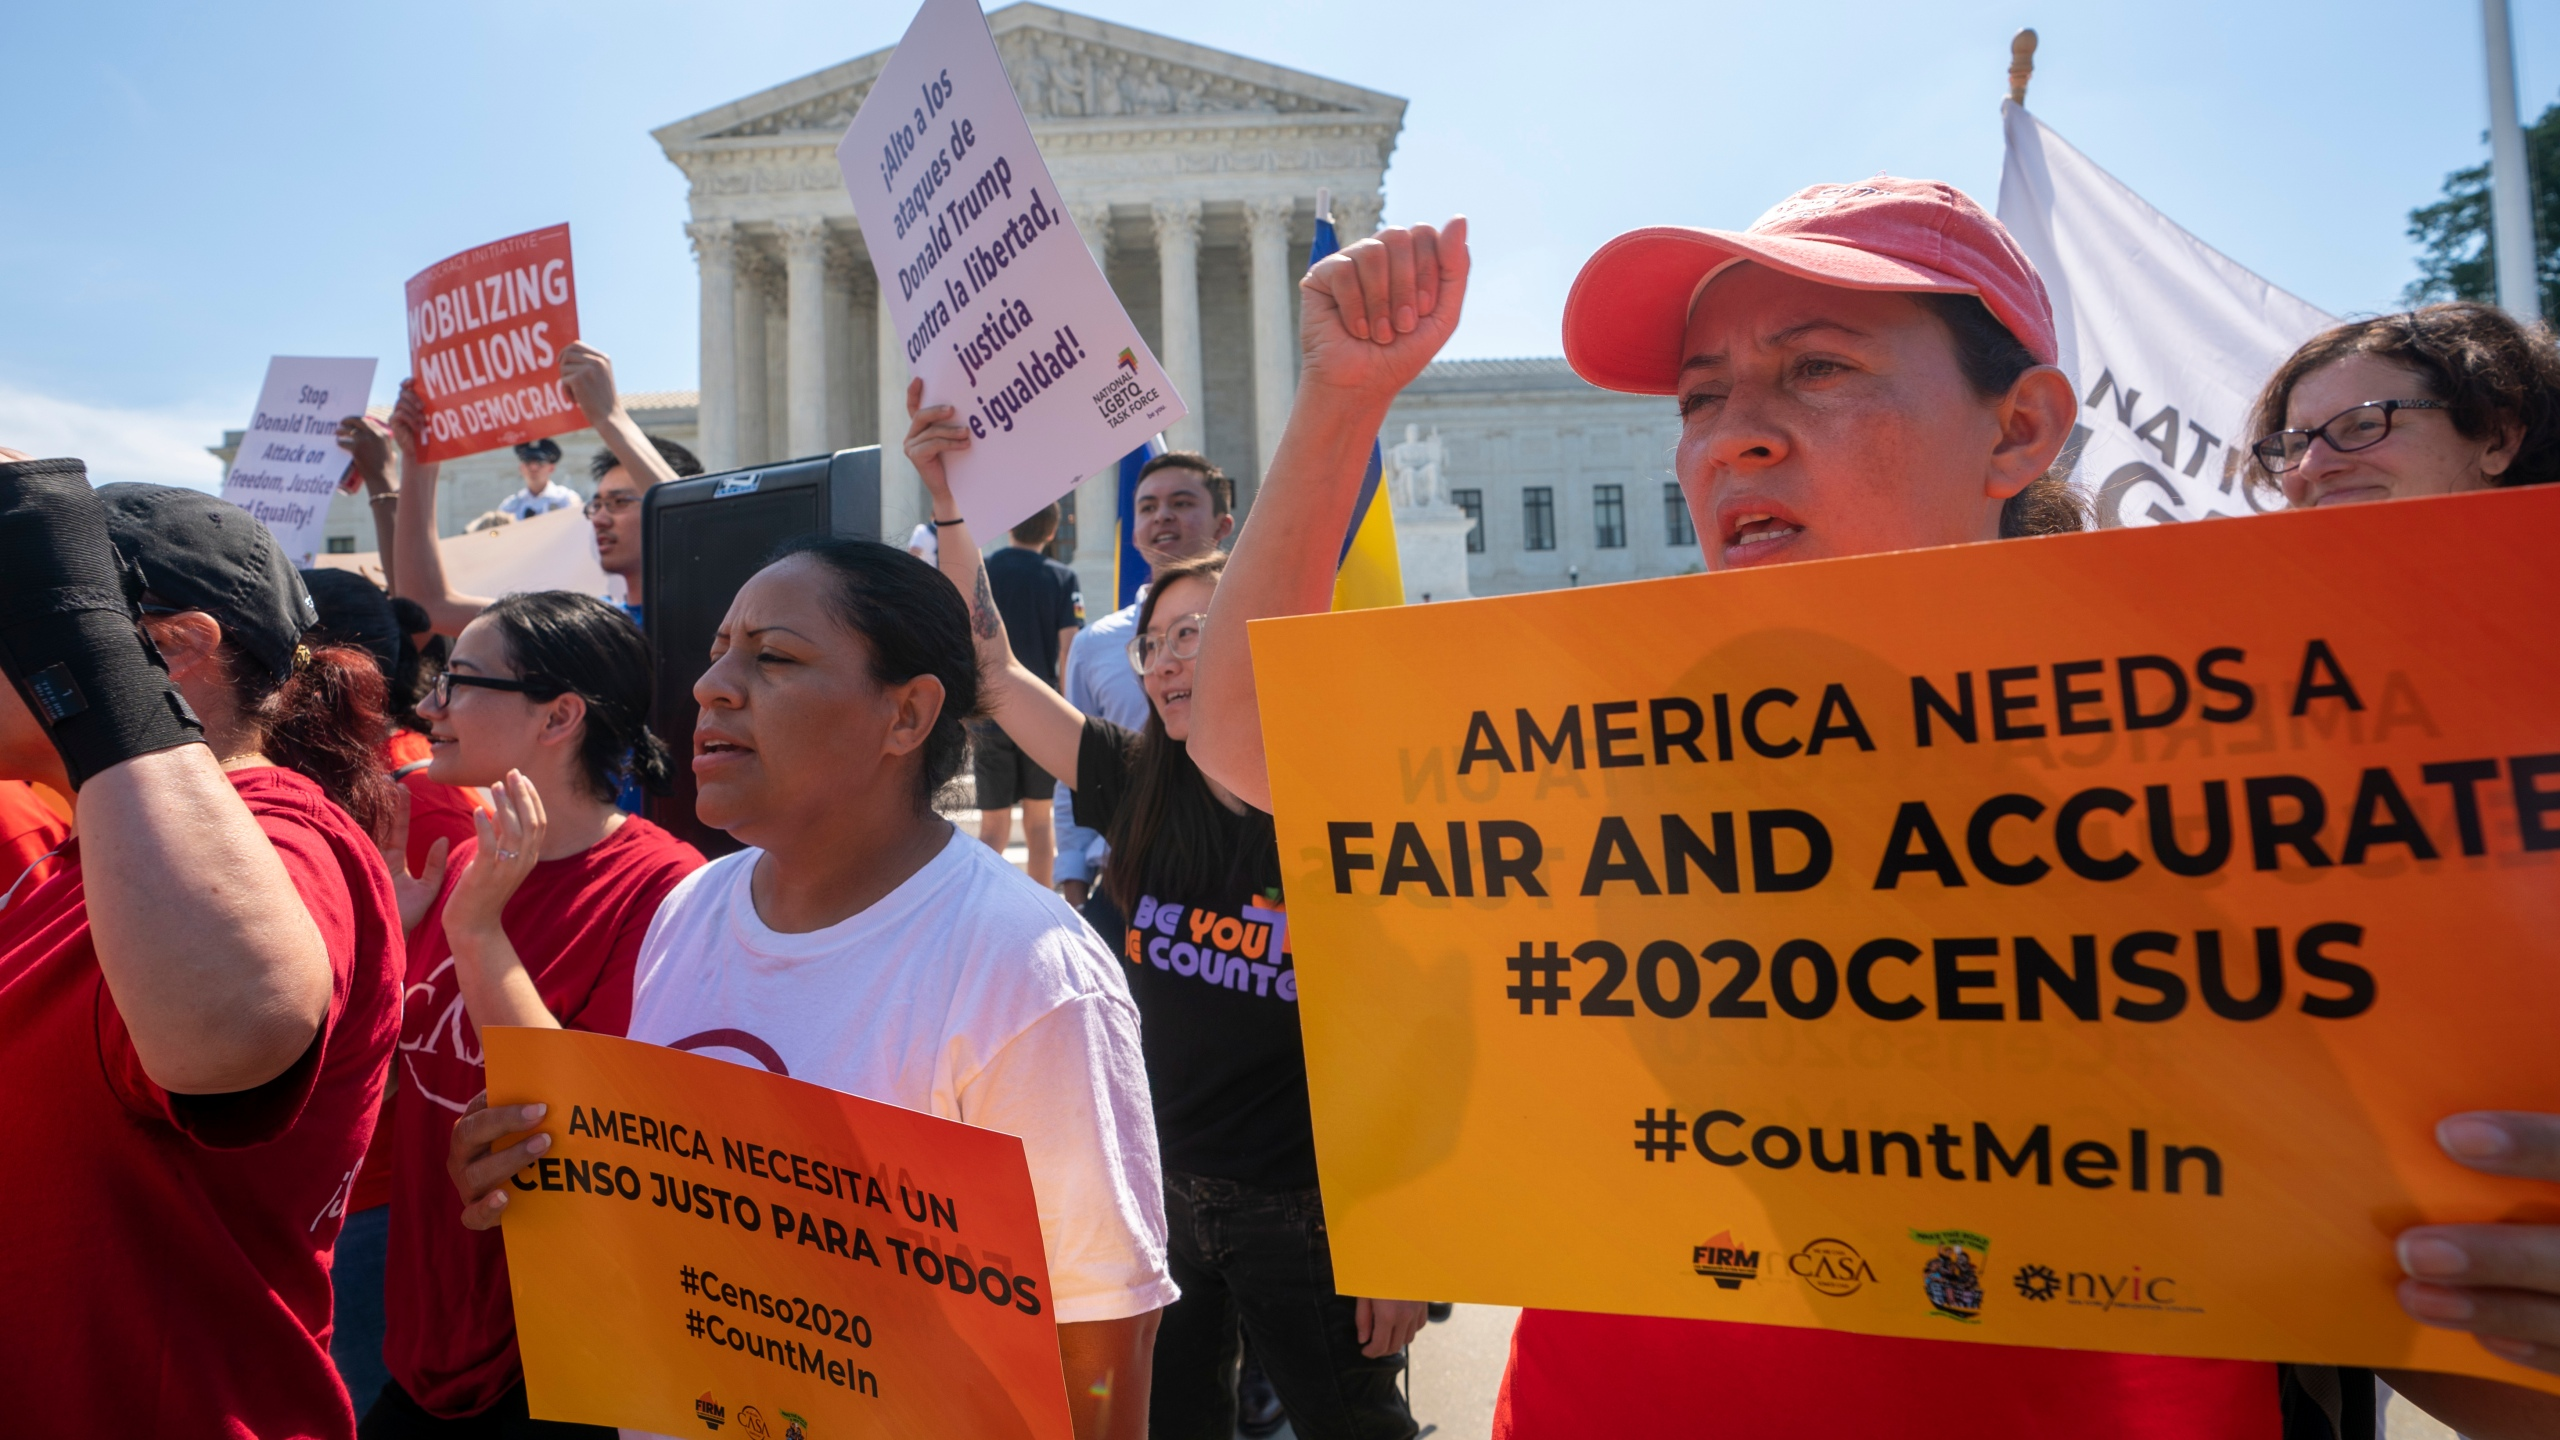 Demonstrators gather at the Supreme Court as the justices finish the term with key decisions on gerrymandering and a census case involving an attempt by the Trump administration to ask everyone about their citizenship status in the 2020 census, on June 27, 2019. (J. Scott Applewhite / Associated Press)